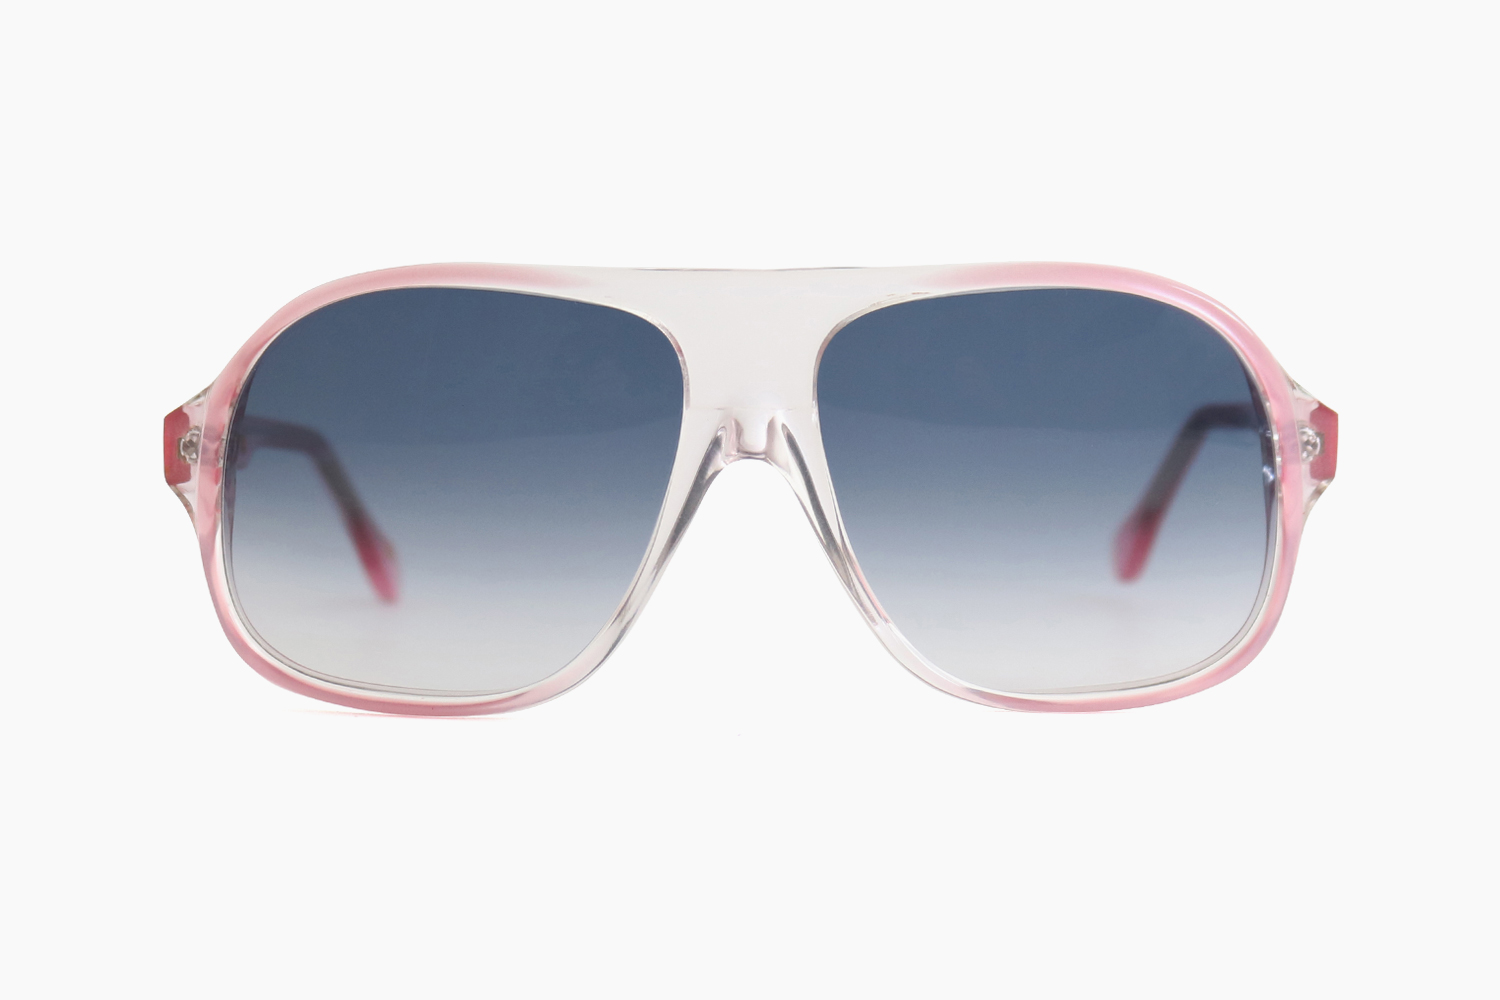 CARL SG UK - PINK|OLIVER GOLDSMITH